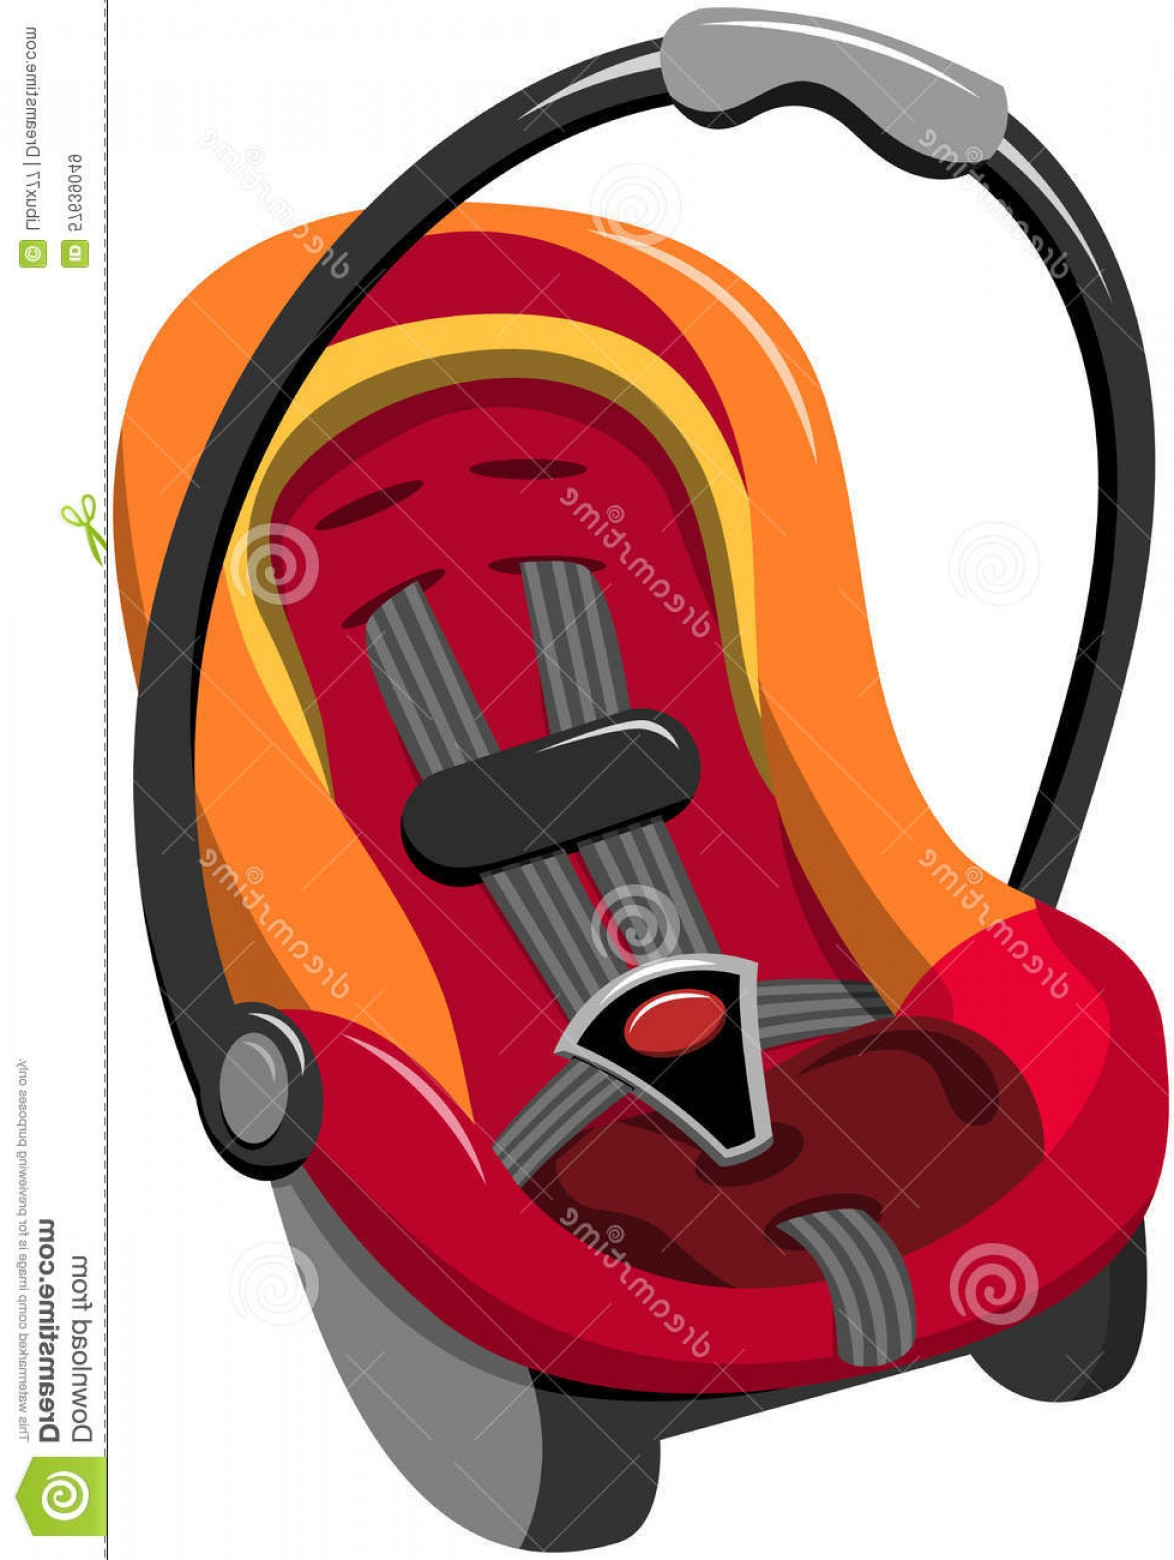 Vector Baby Seat: Stock Illustration Baby Car Seat Isolated Five Point Safety Harness Carrying Handle White Image